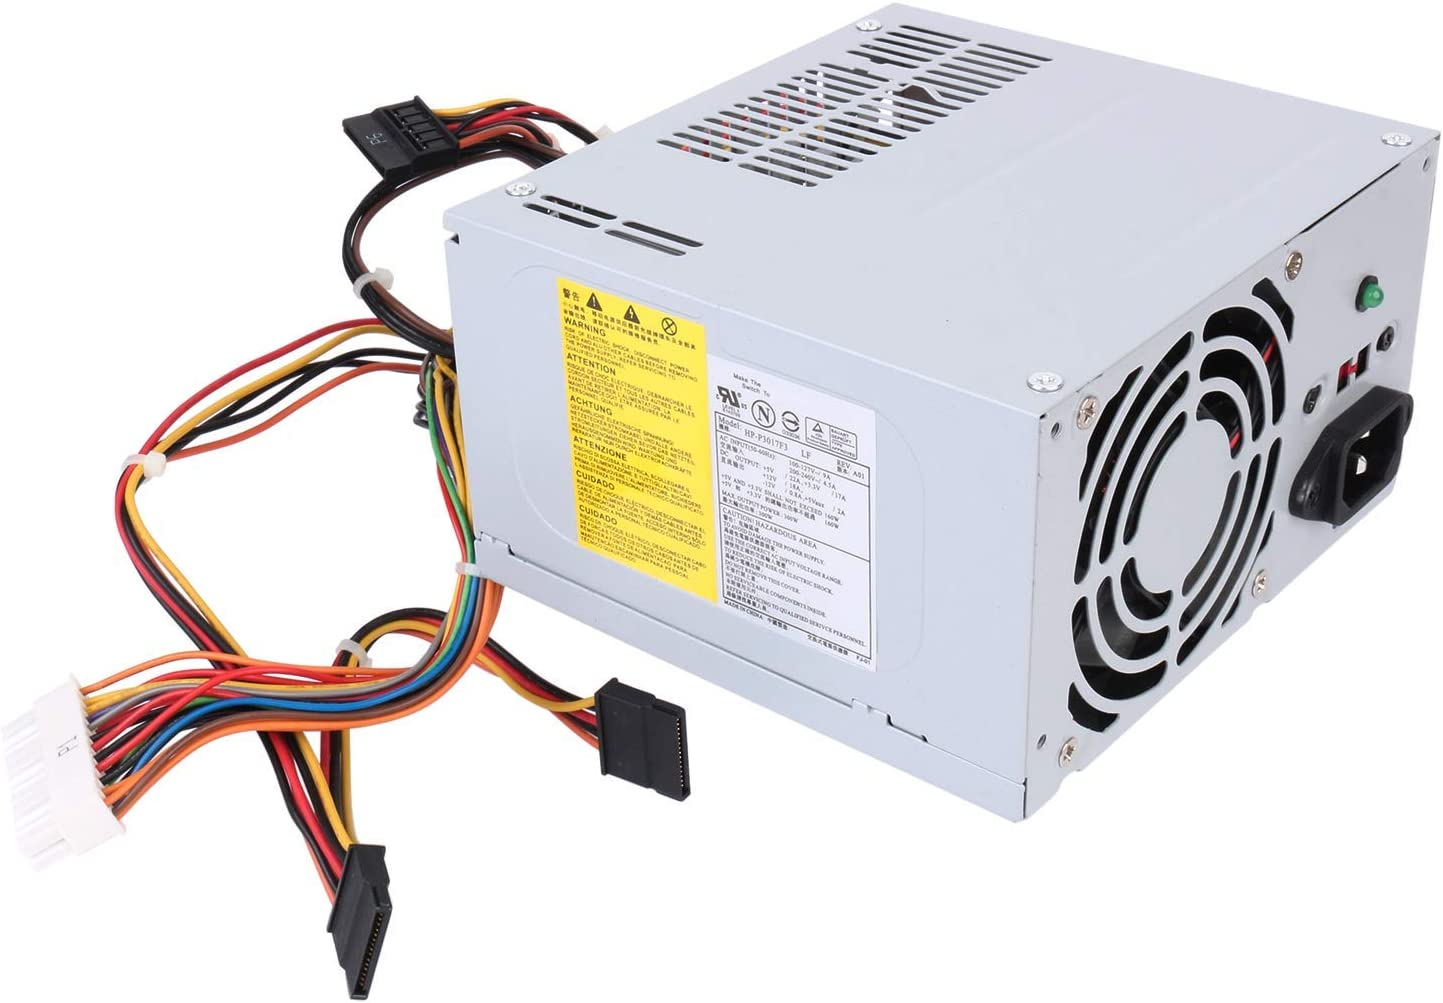 S-Union HP-P3017F3 J036N XW600 300W Replacement Power Supply for Dell Vostro, Studio, Precision, Inspiron Series Mini Towers Systems Part Number: PS-5301-08, D300R002L, HP-P3017F3 LF, DPS-300AB-24